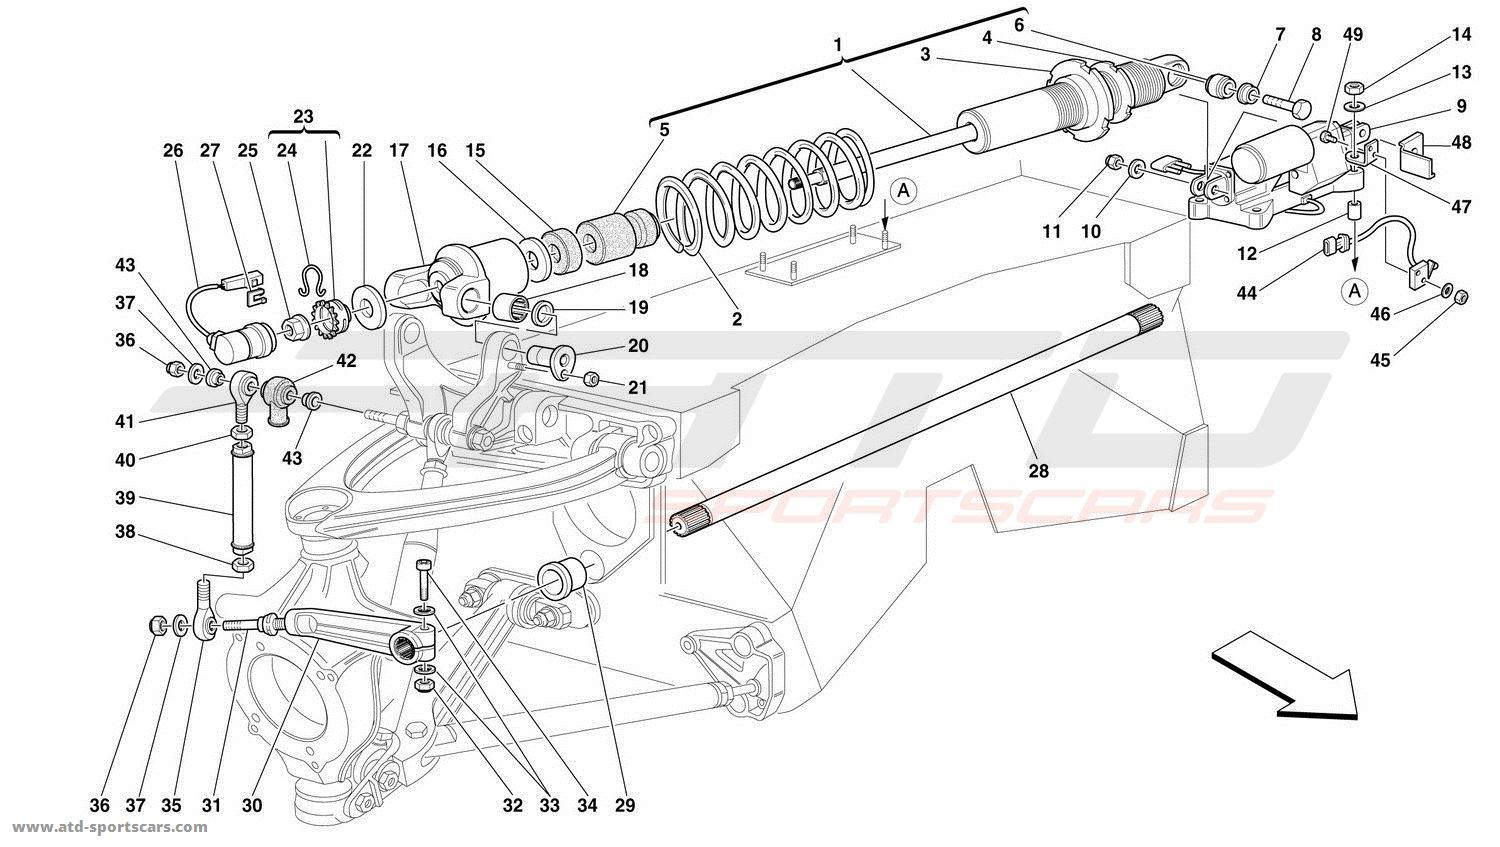 Ferrari F50 Undercarriage Parts At Atd Sportscars